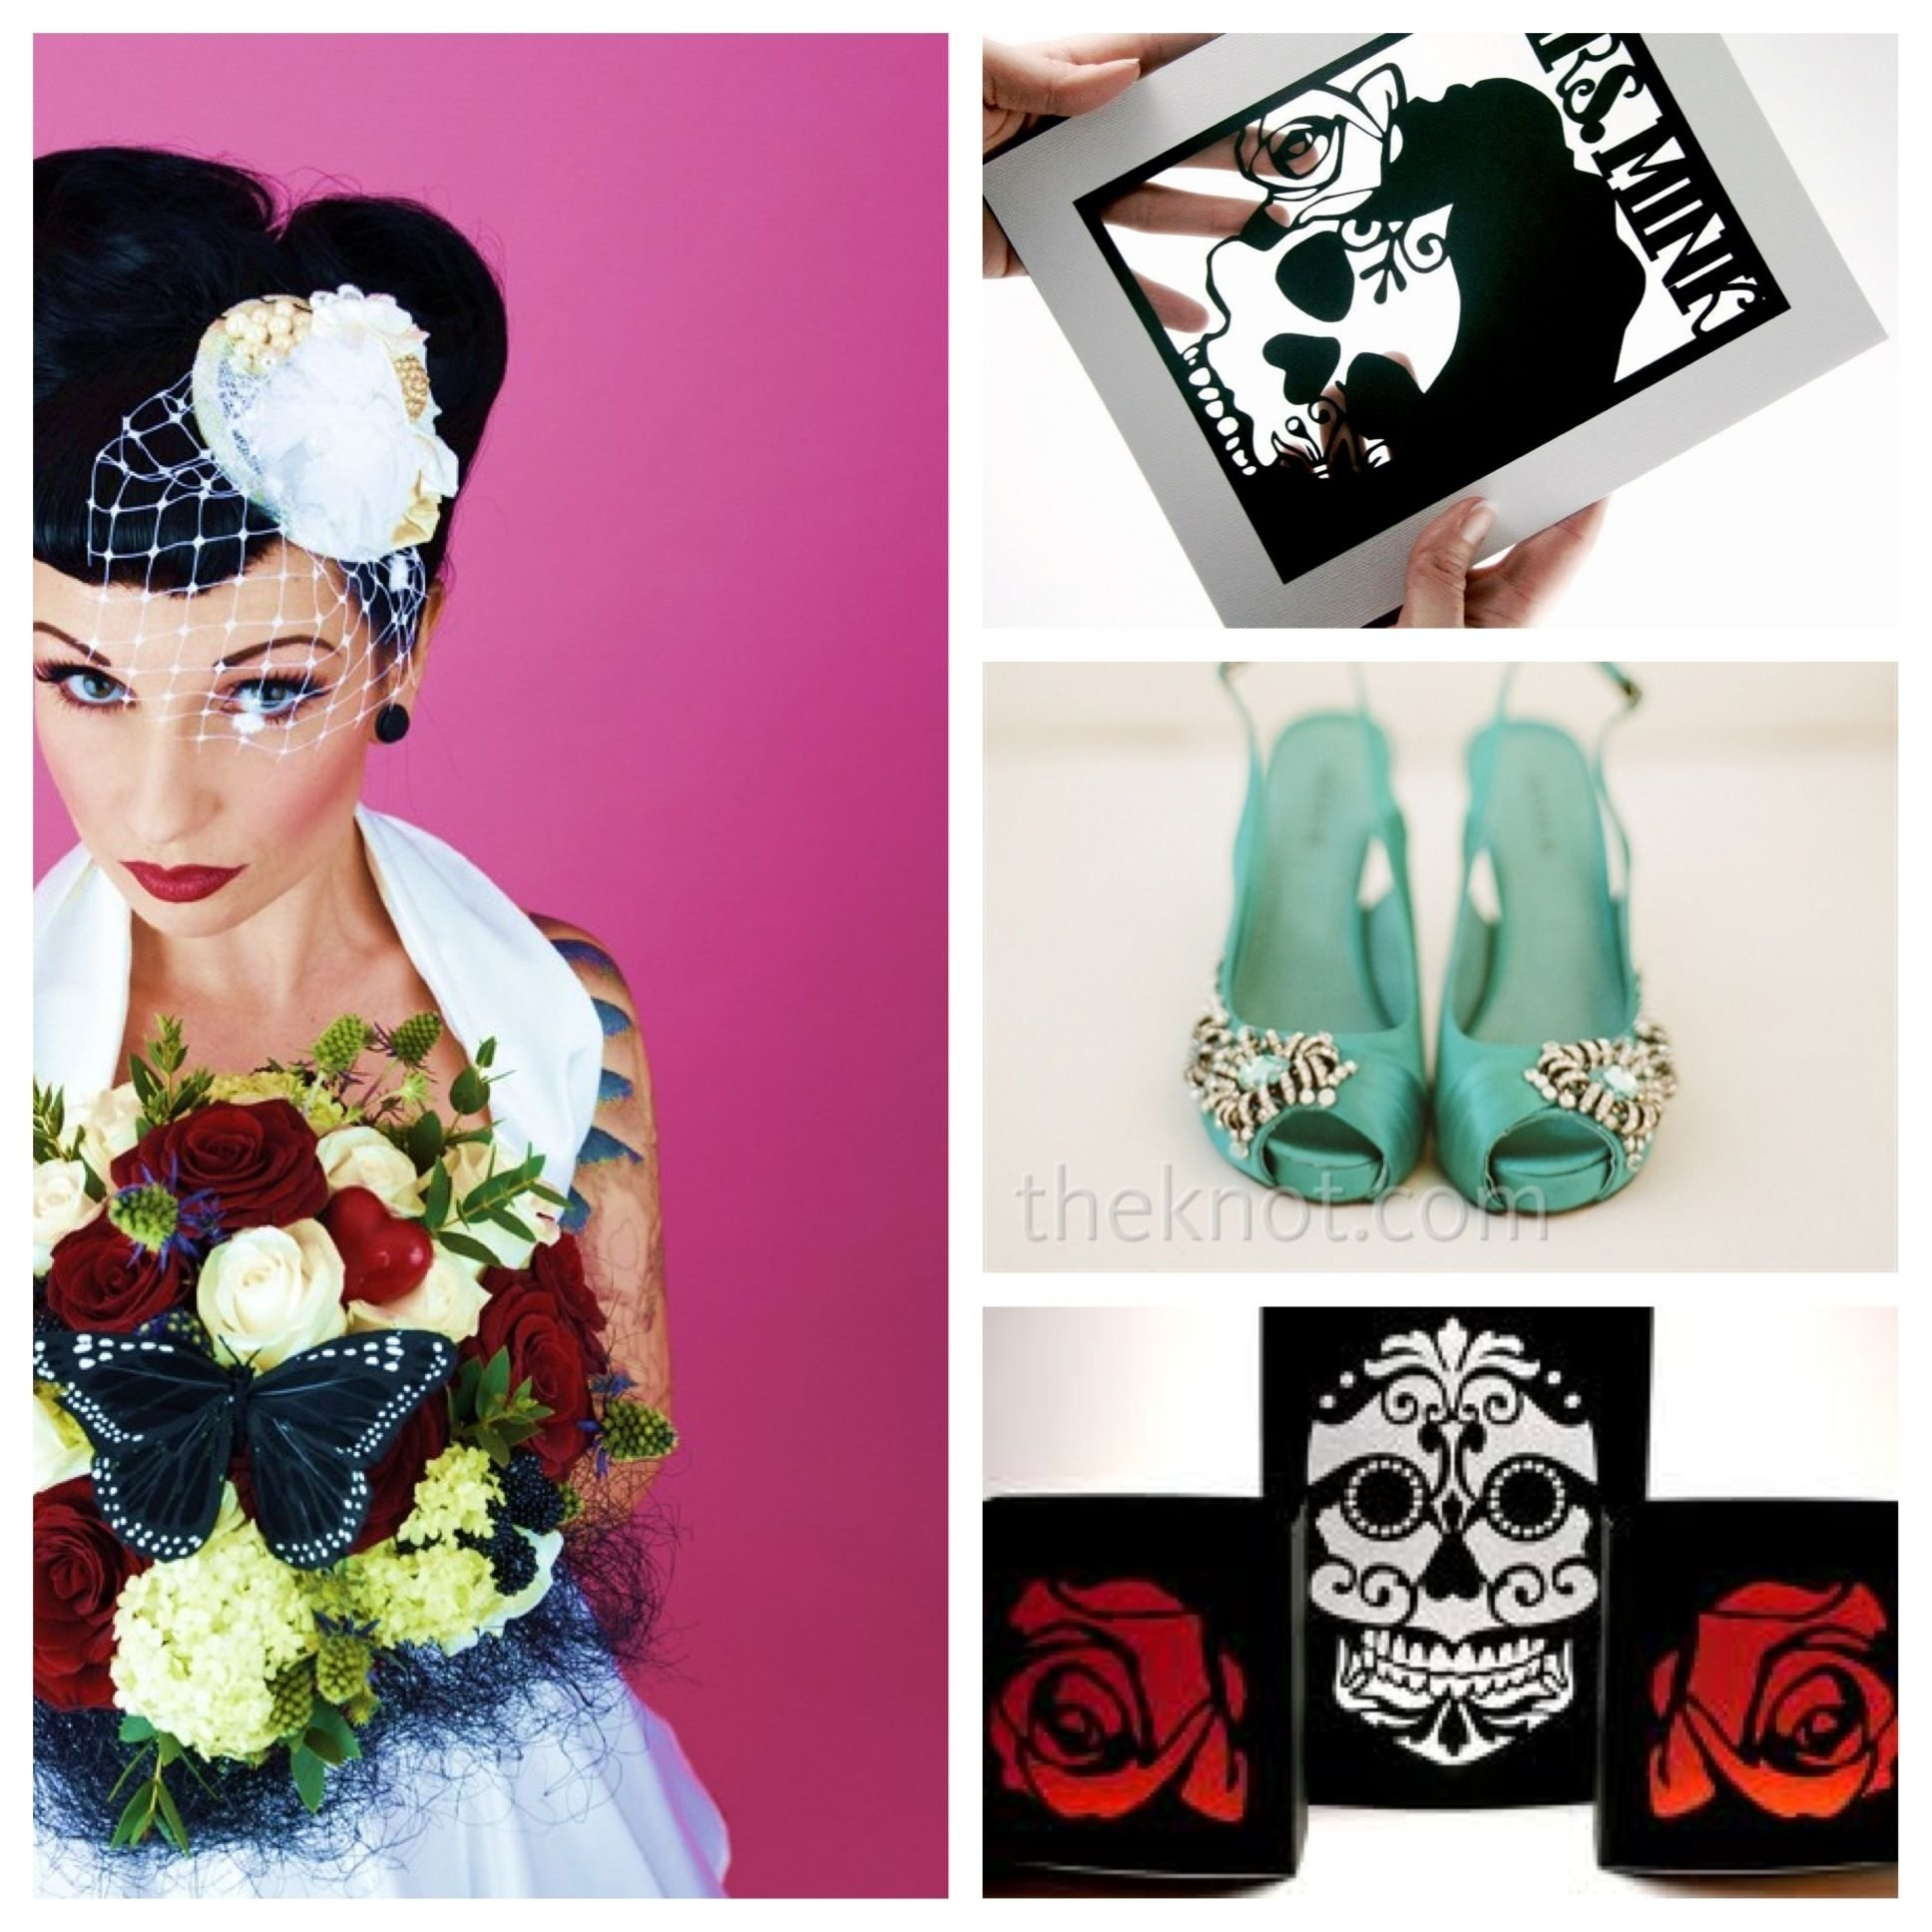 10 Ideal Day Of The Dead Wedding Ideas day of the dead wedding ideas sugar skull luminaries and chair